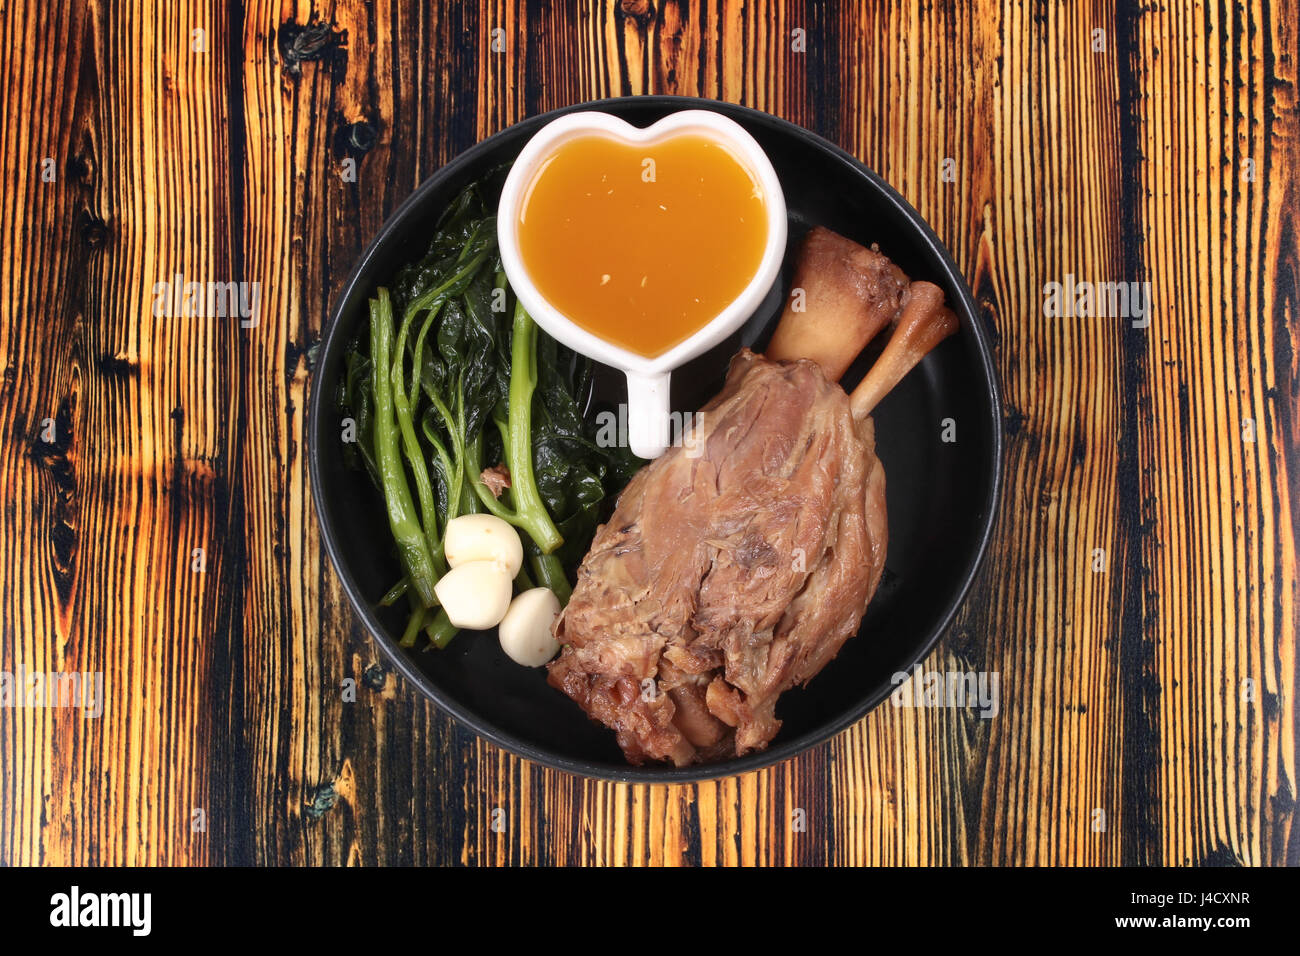 Fat out recipe of stewed pork, Stewed pork hock peel skin and fat out with boiled kale served on wood.  Call Kha - Stock Image